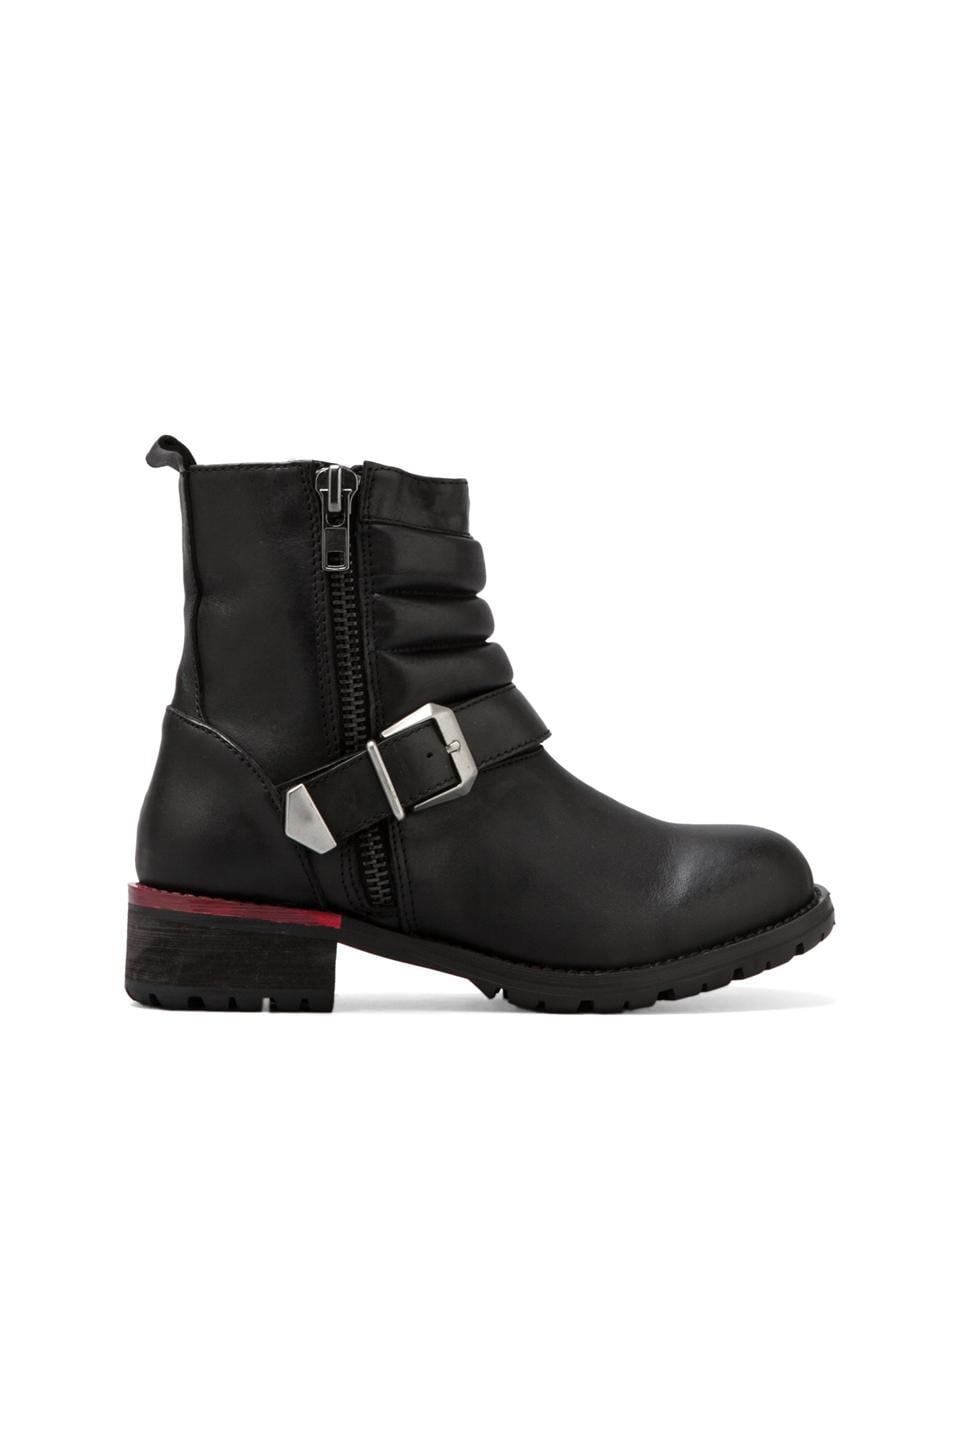 Kelsi Dagger Tegan Boot in Black